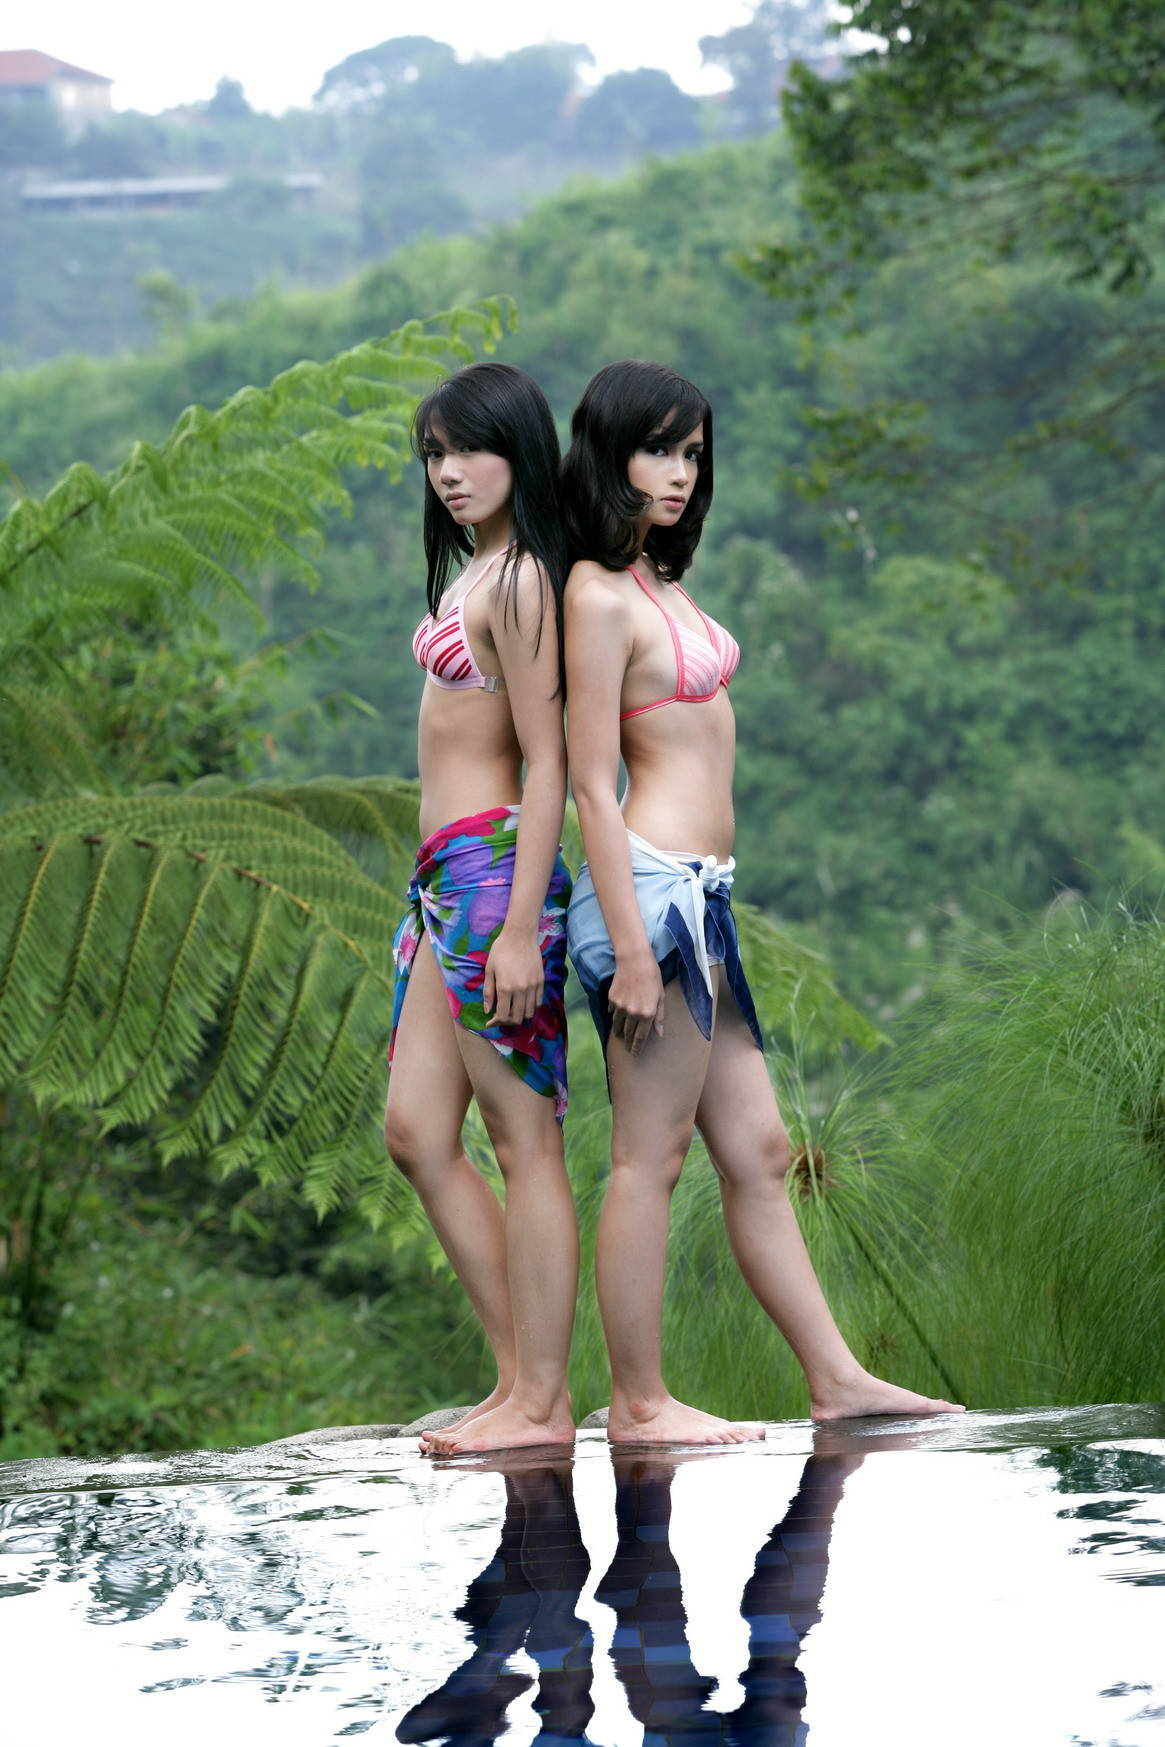 Foto Model Super Hot Pakai Bikini